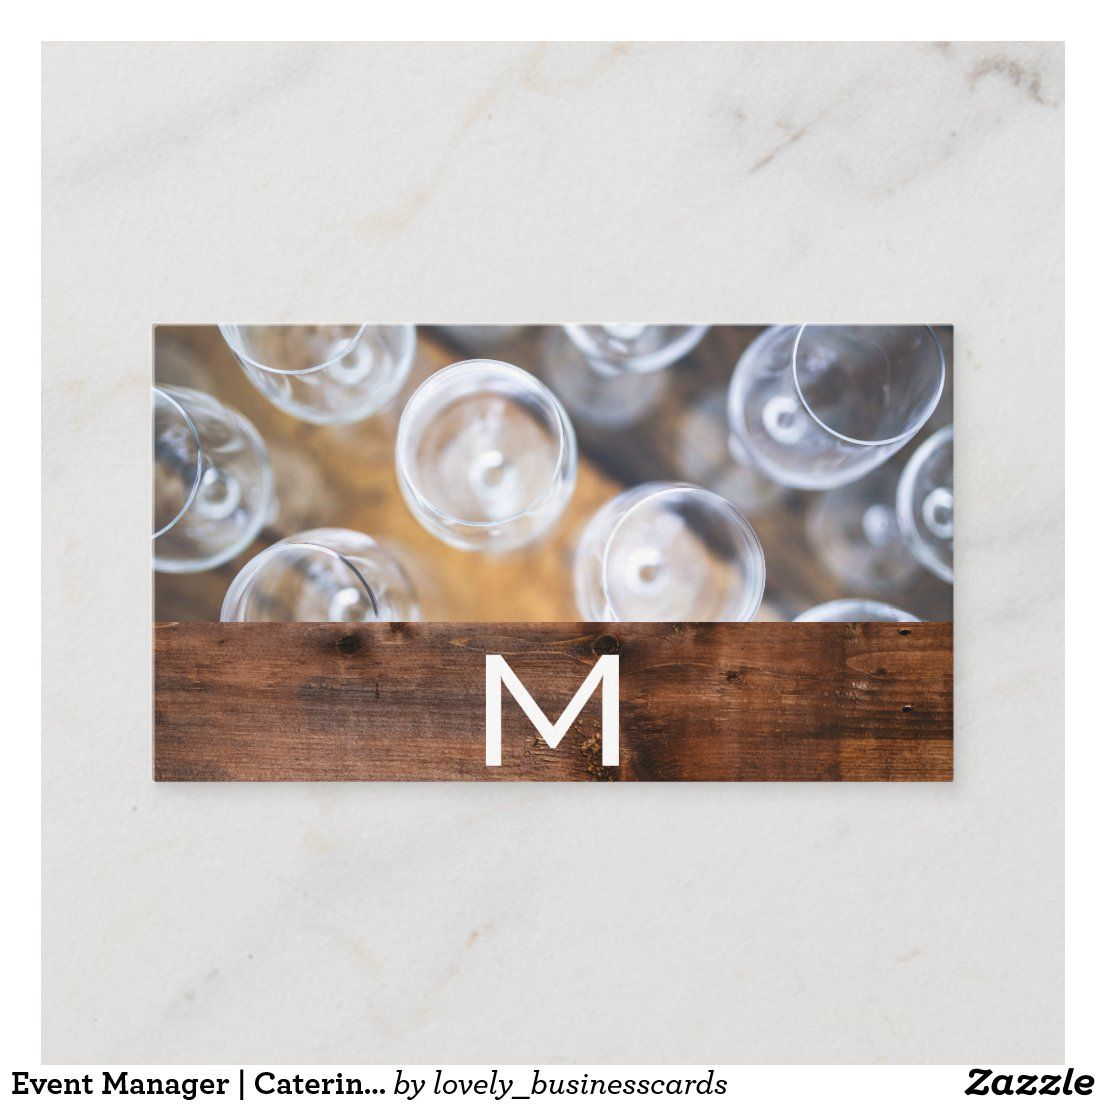 Event Manager | Catering Services Business Card | Zazzle.com